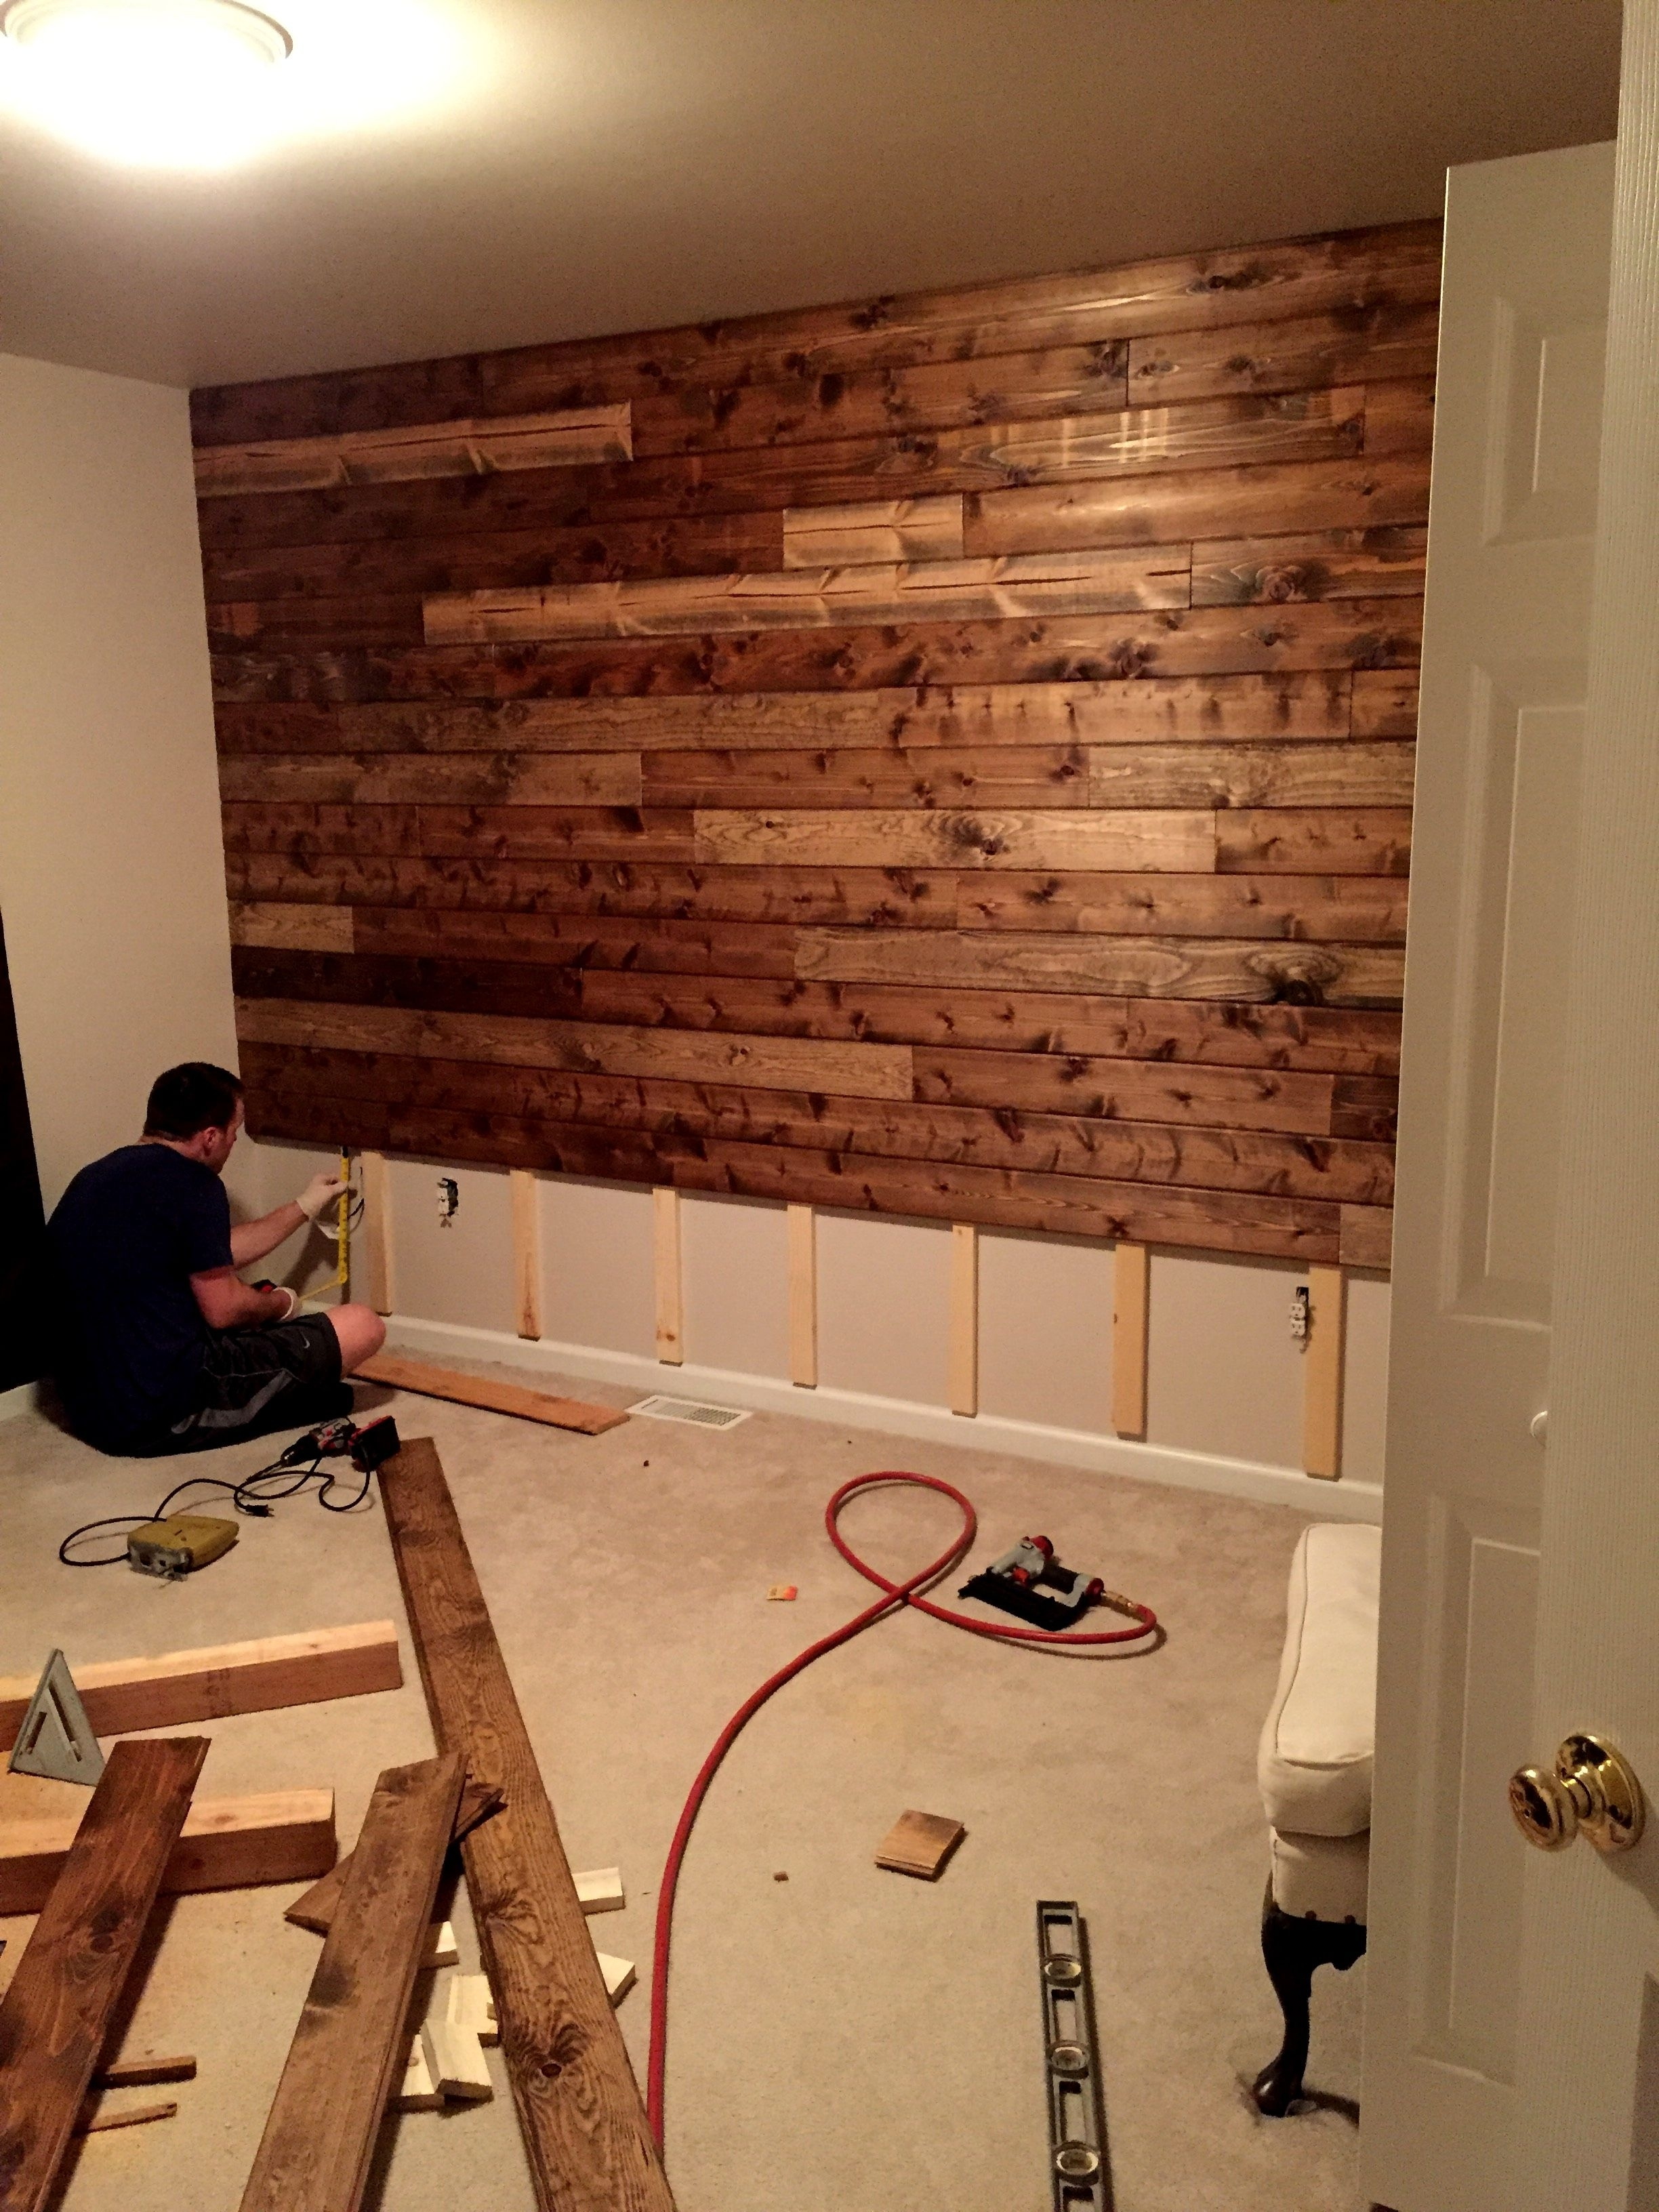 Wooden Accent Wall Tutorial | Country Decor | Pinterest With Most Recent Wall Accents With Pallets (View 14 of 15)